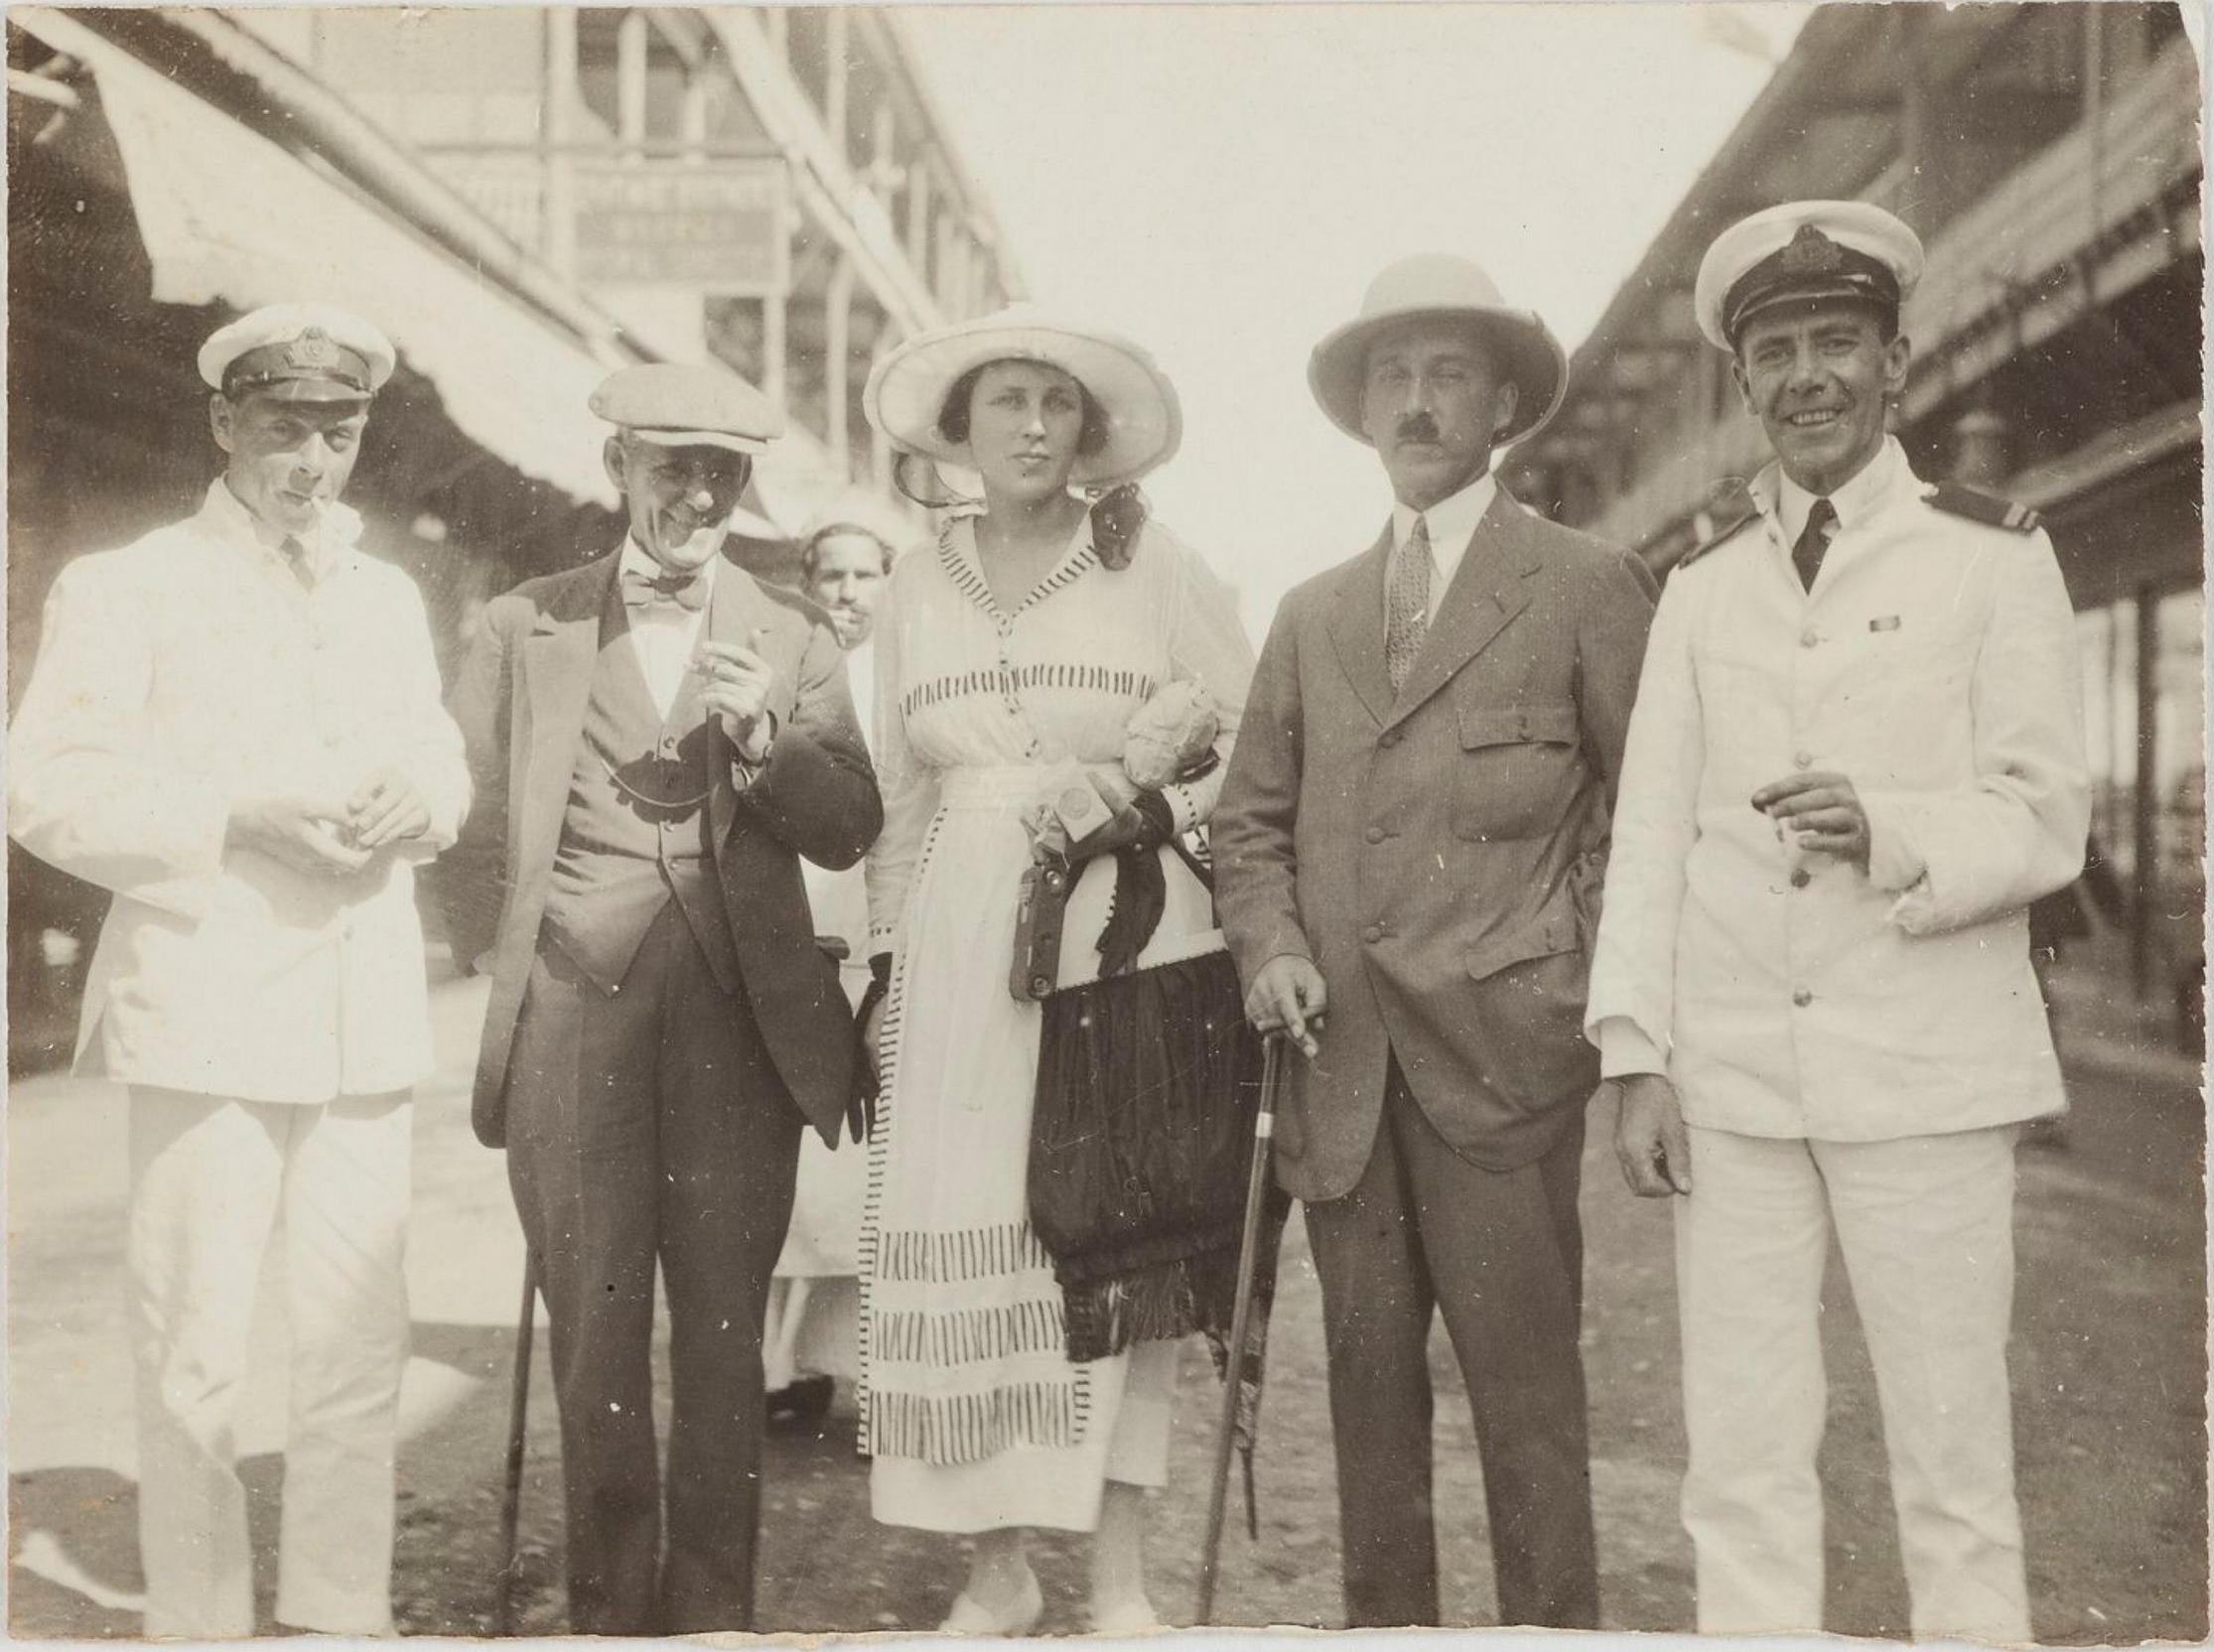 Port Said, Egypt, 18 April 1919: Dora and Leslie Walford with officers from RMS Osterley. Ephtimios Brothers Stores, 'Oriental curiosities' in the background / photographer unknown